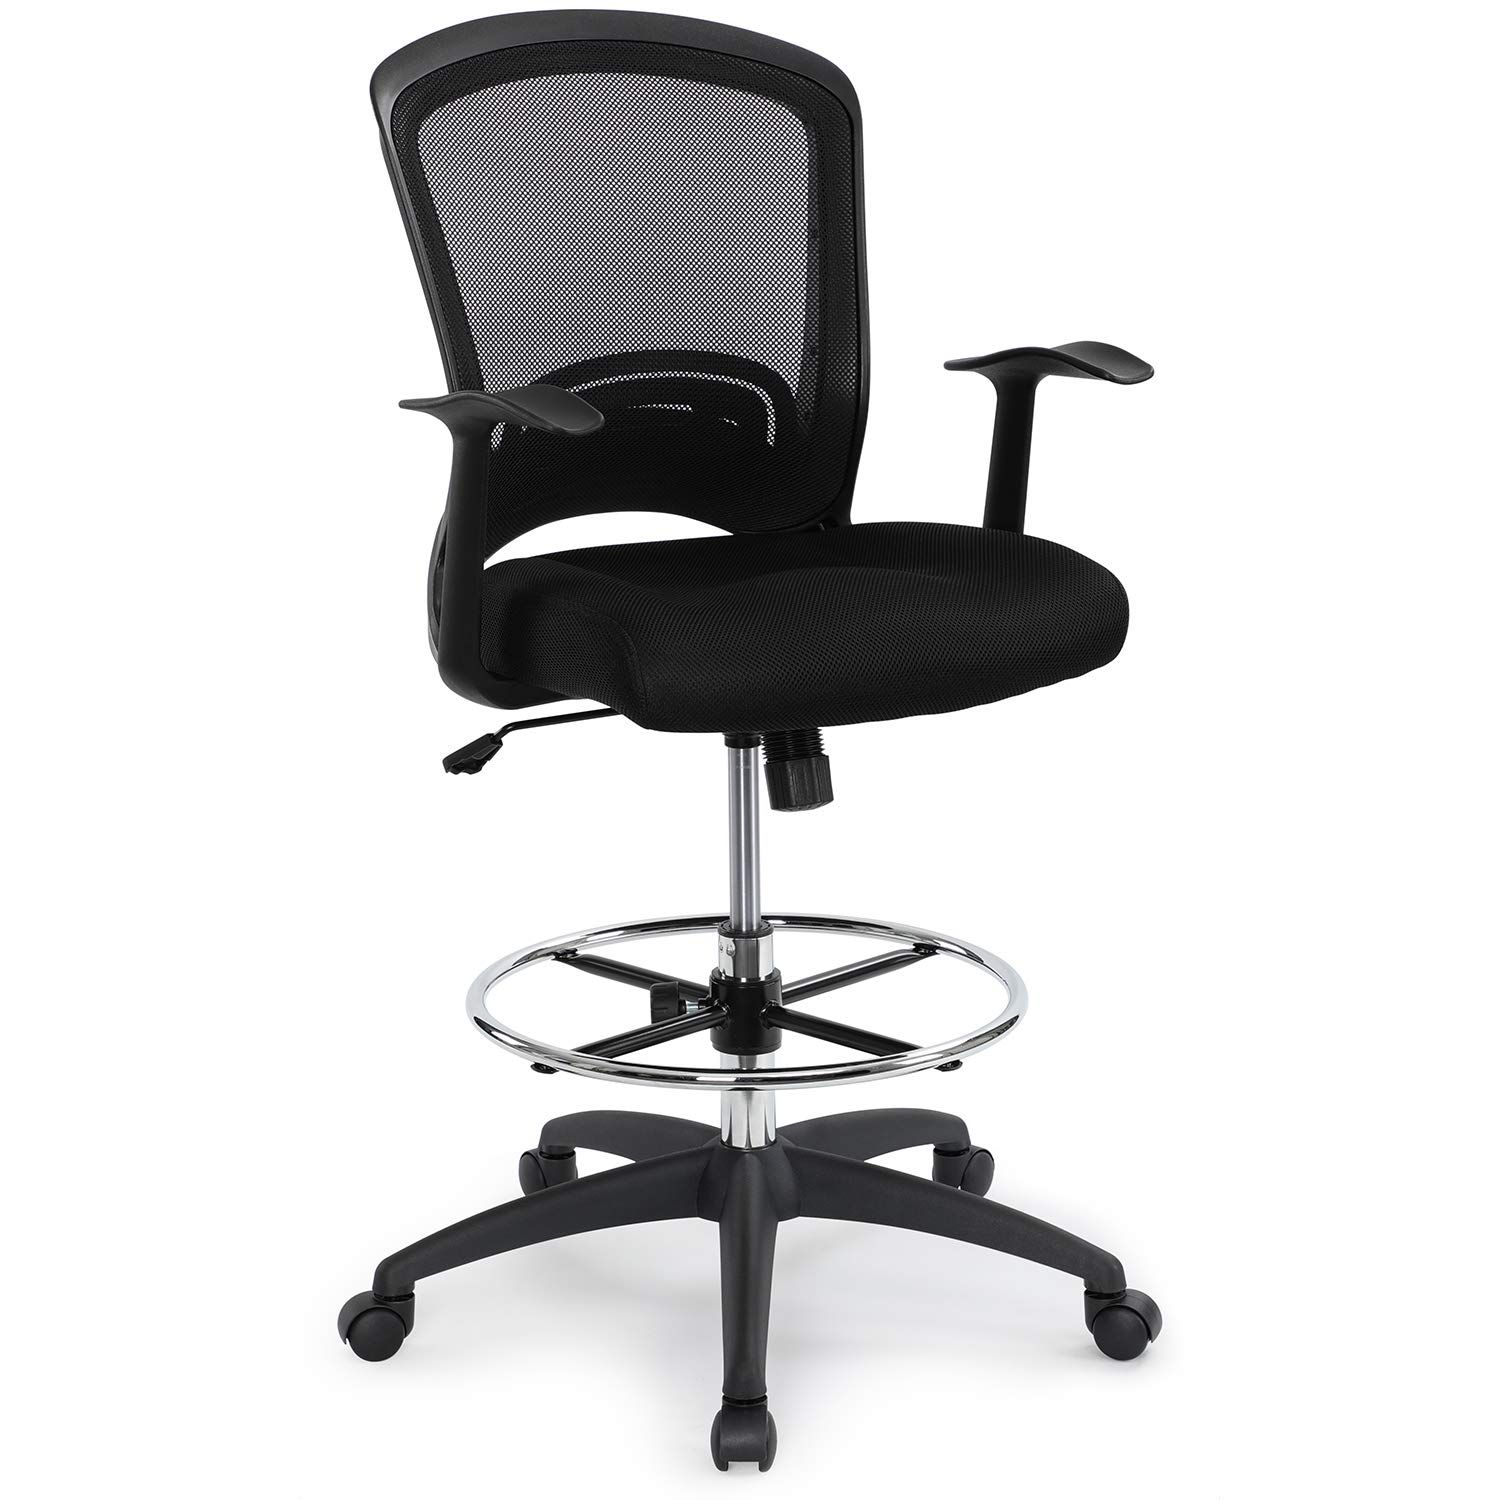 Ergonomic Midback Mesh Adjustable Drafting Chair With Foot Ring Standingdesk Matched Tall Swivel Computer Office Stool Black Drafting Chair Office Stool Chair